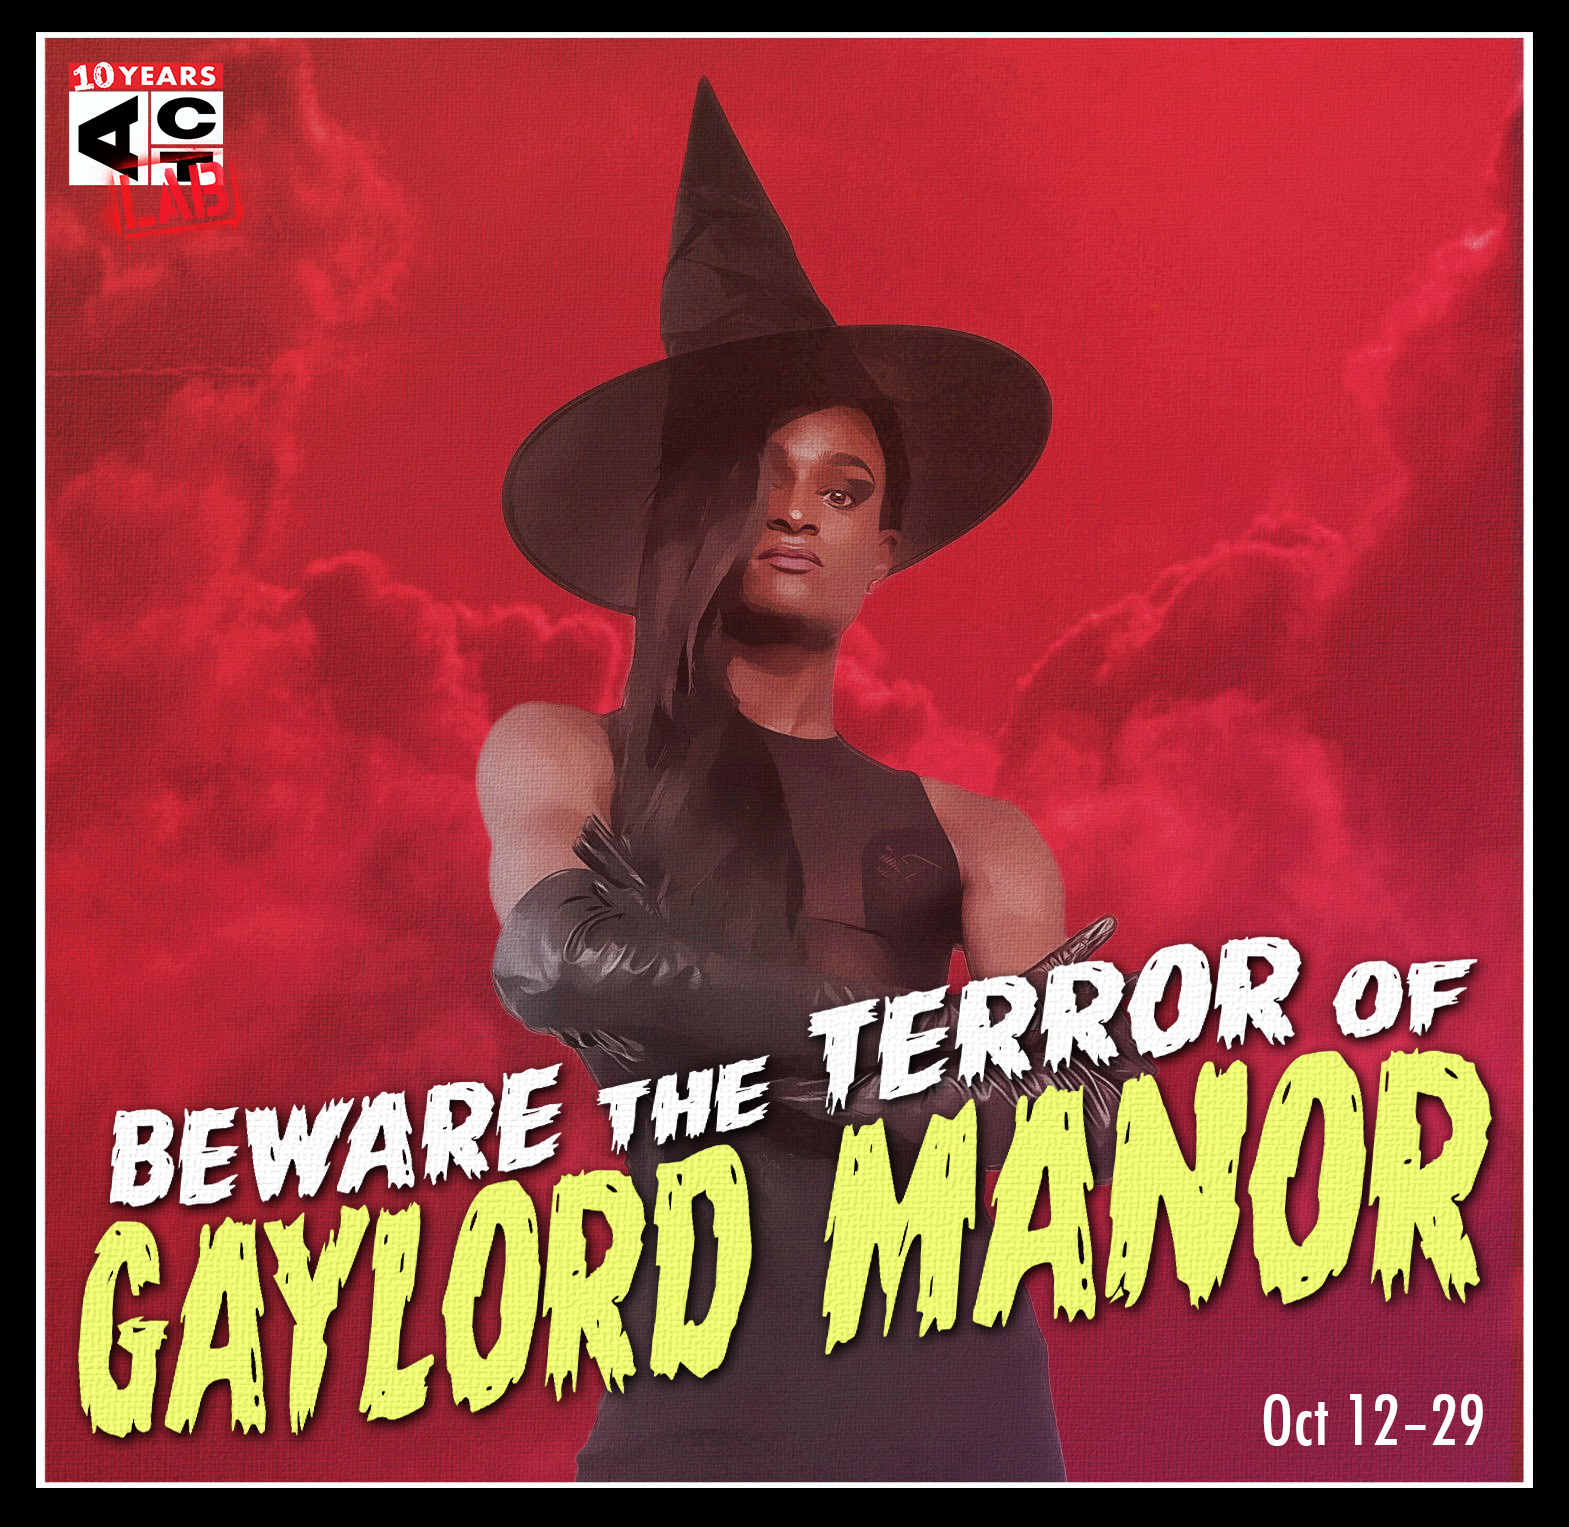 Beware the Terror of Gaylord Manor